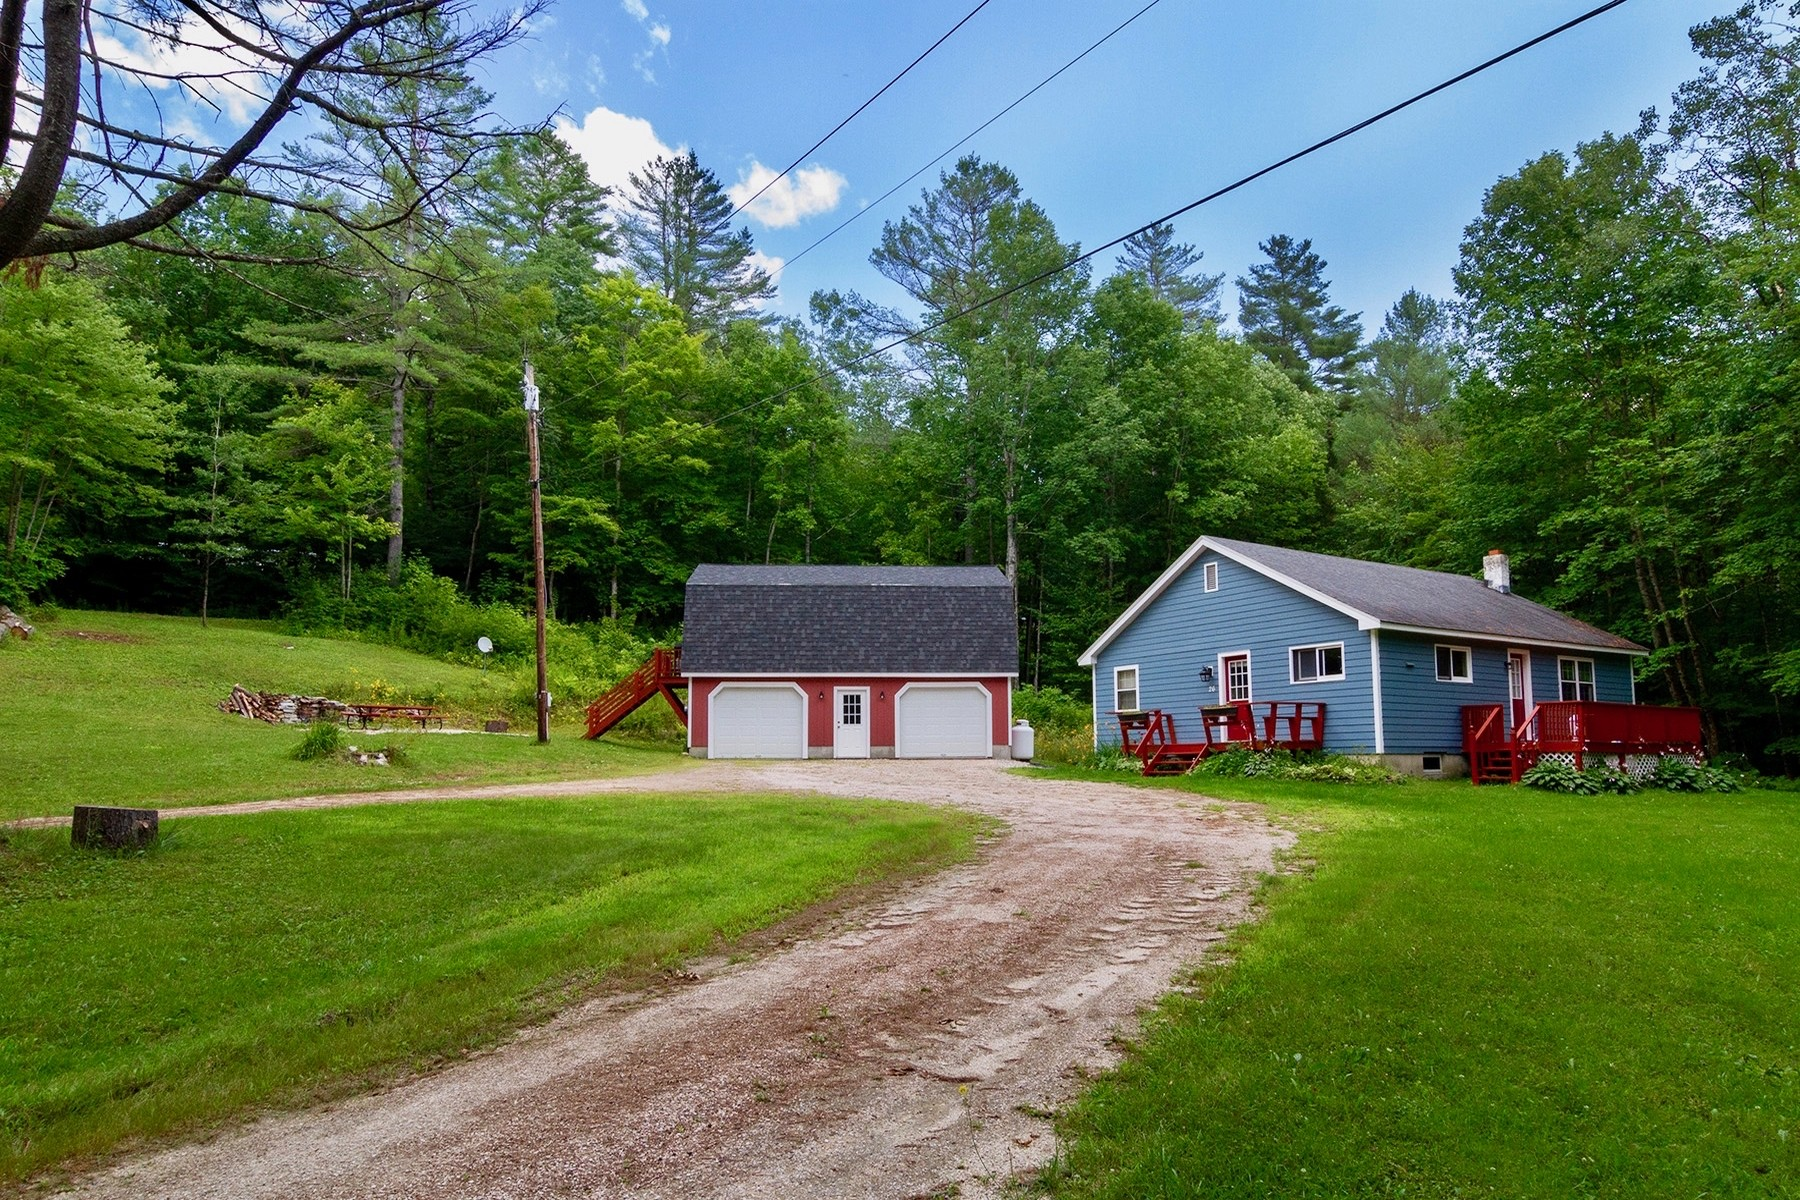 Single Family Homes for Sale at Easy Keeper Ranch with 2-Bay Garage/Apt 26 Hillside Road Plymouth, Vermont 05056 United States